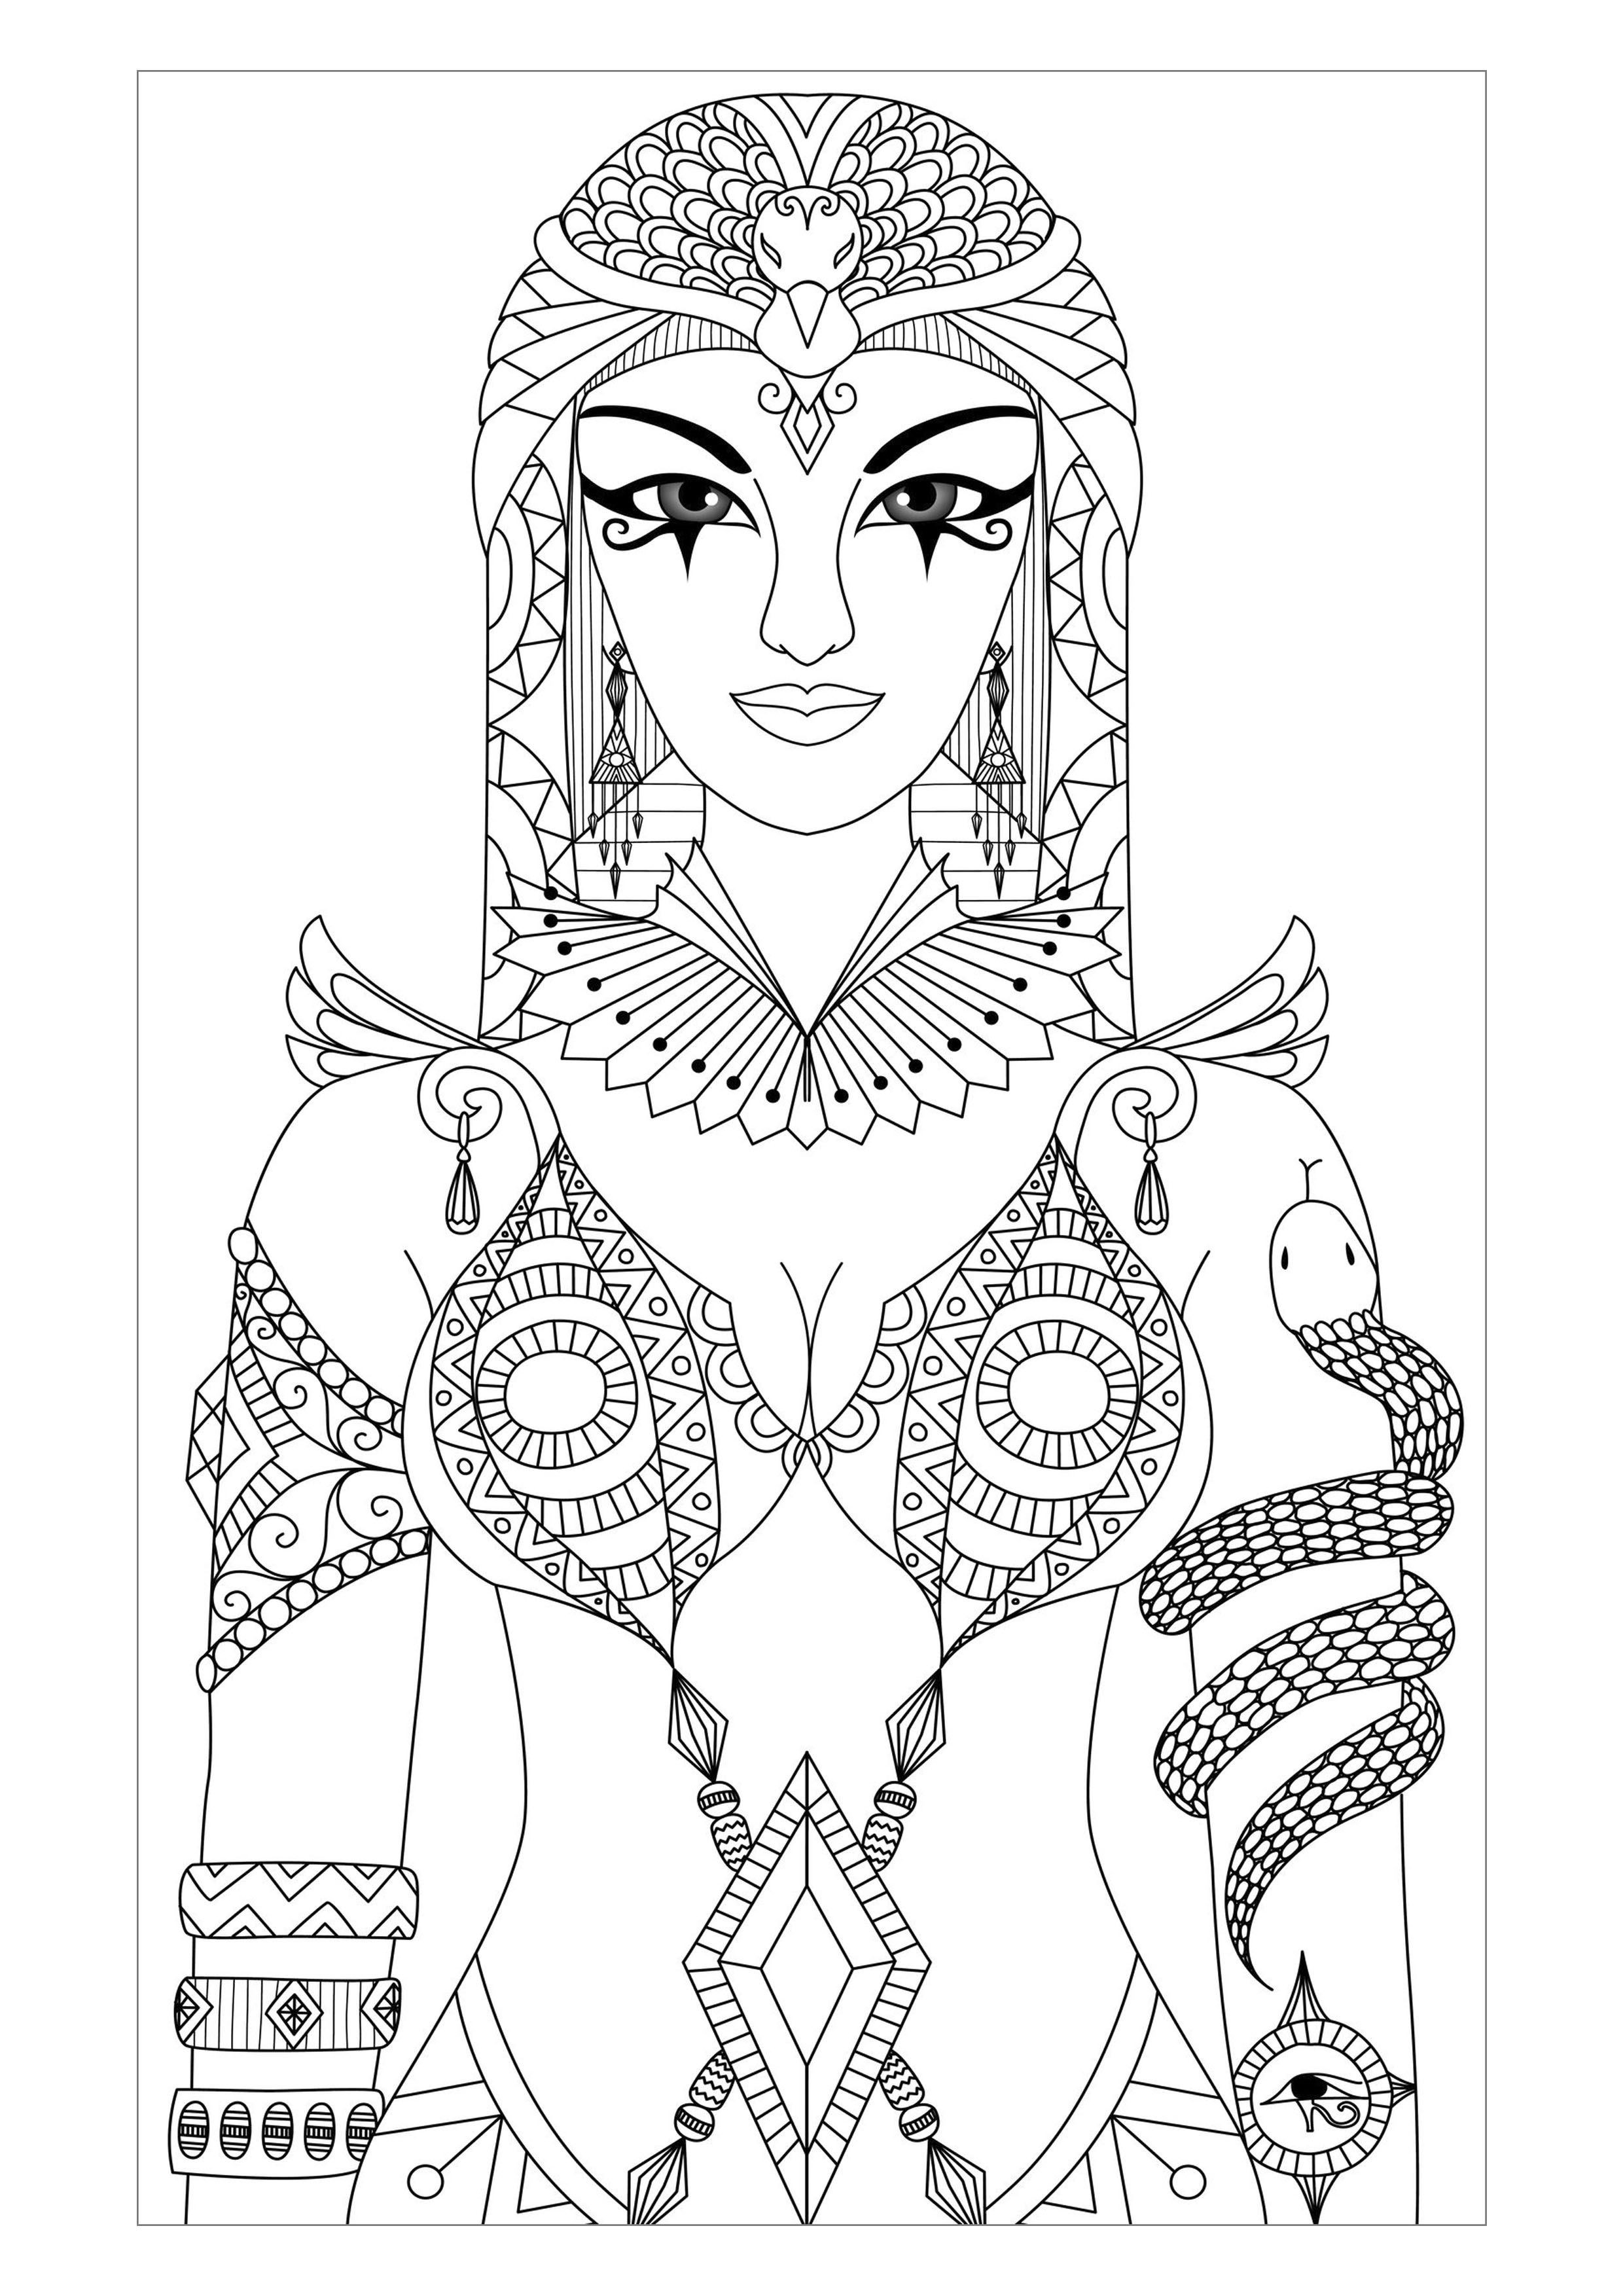 vampire coloring pages vampire diares coloring pages coloring pages to download vampire pages coloring